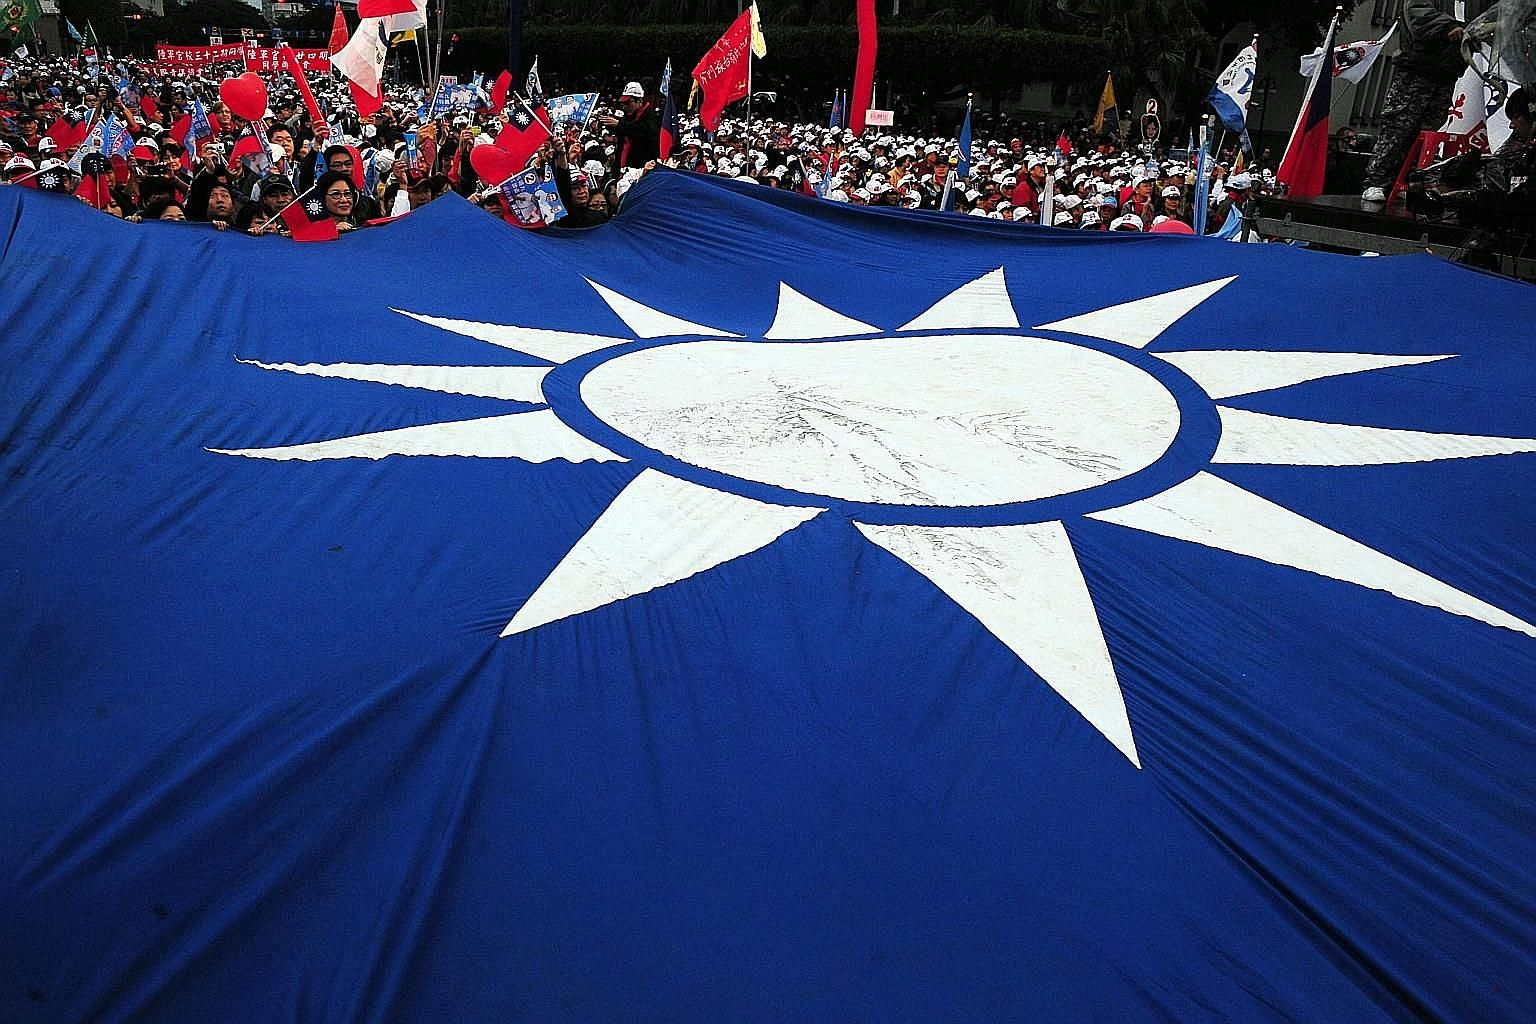 This picture, taken on Jan 8, 2012, shows a Kuomintang flag on display at an election campaign rally in Taipei. The party vowed to reform after a crushing defeat in elections last year, but it is still struggling to find its feet.